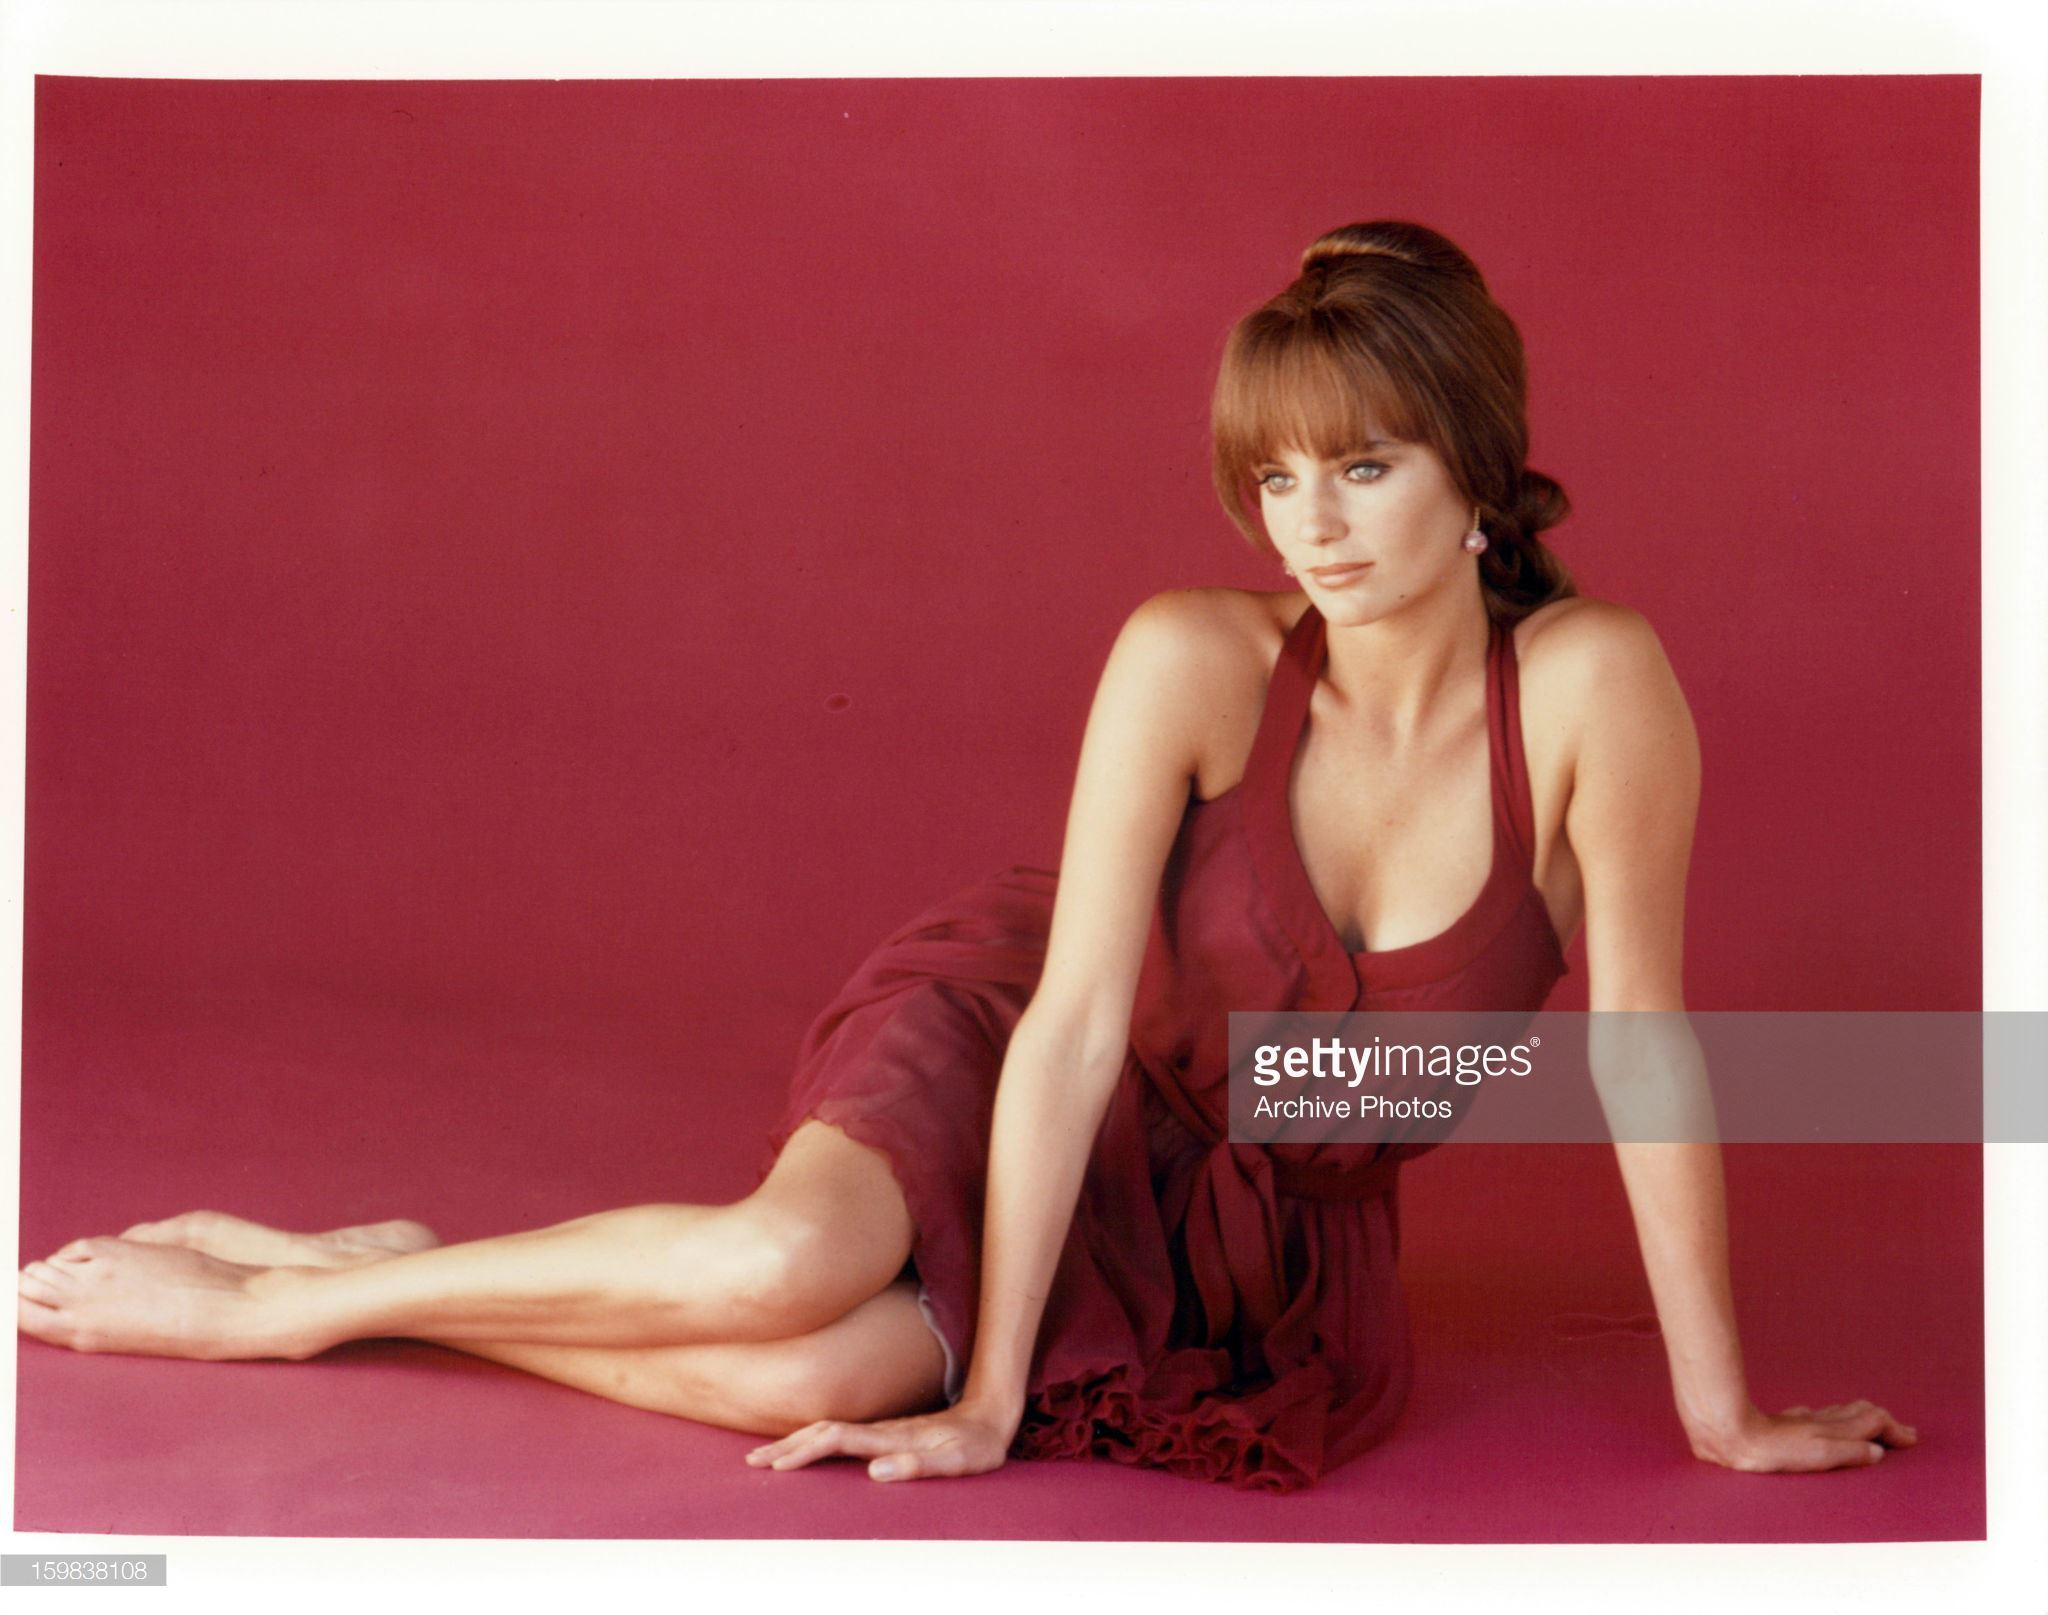 49 Hot Pictures Of Jacqueline Bisset Which Are Too Hot To Handle-3808